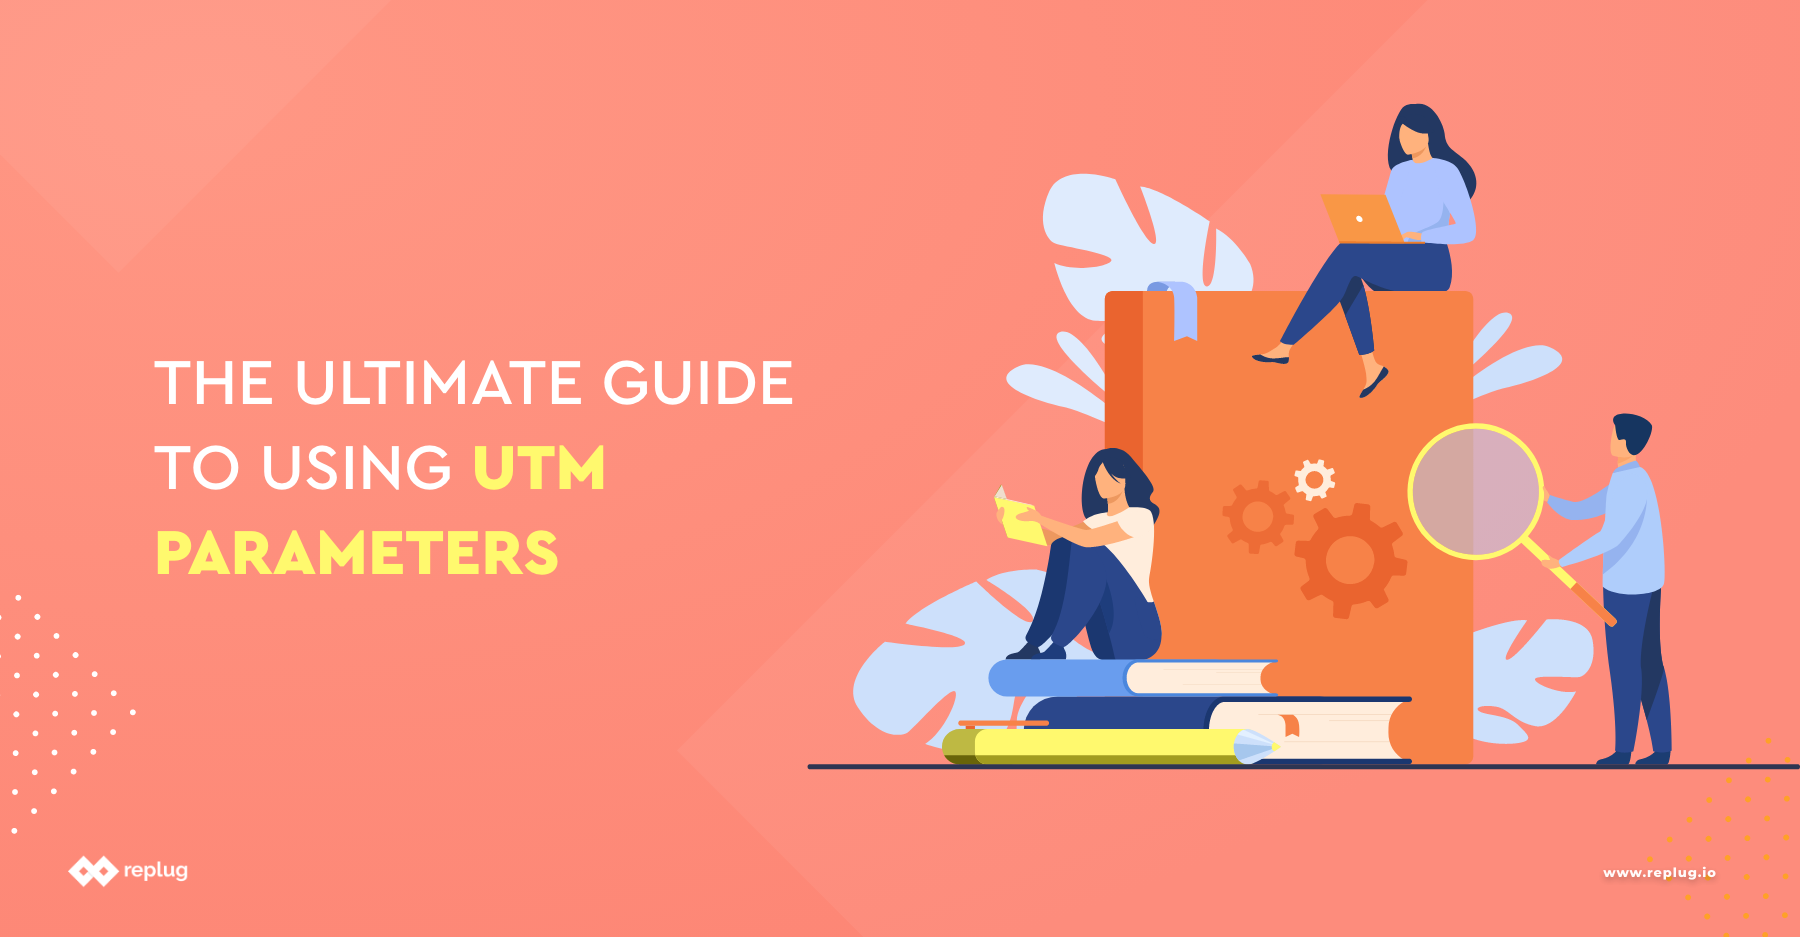 The Ultimate Guide to Using UTM Parameters'